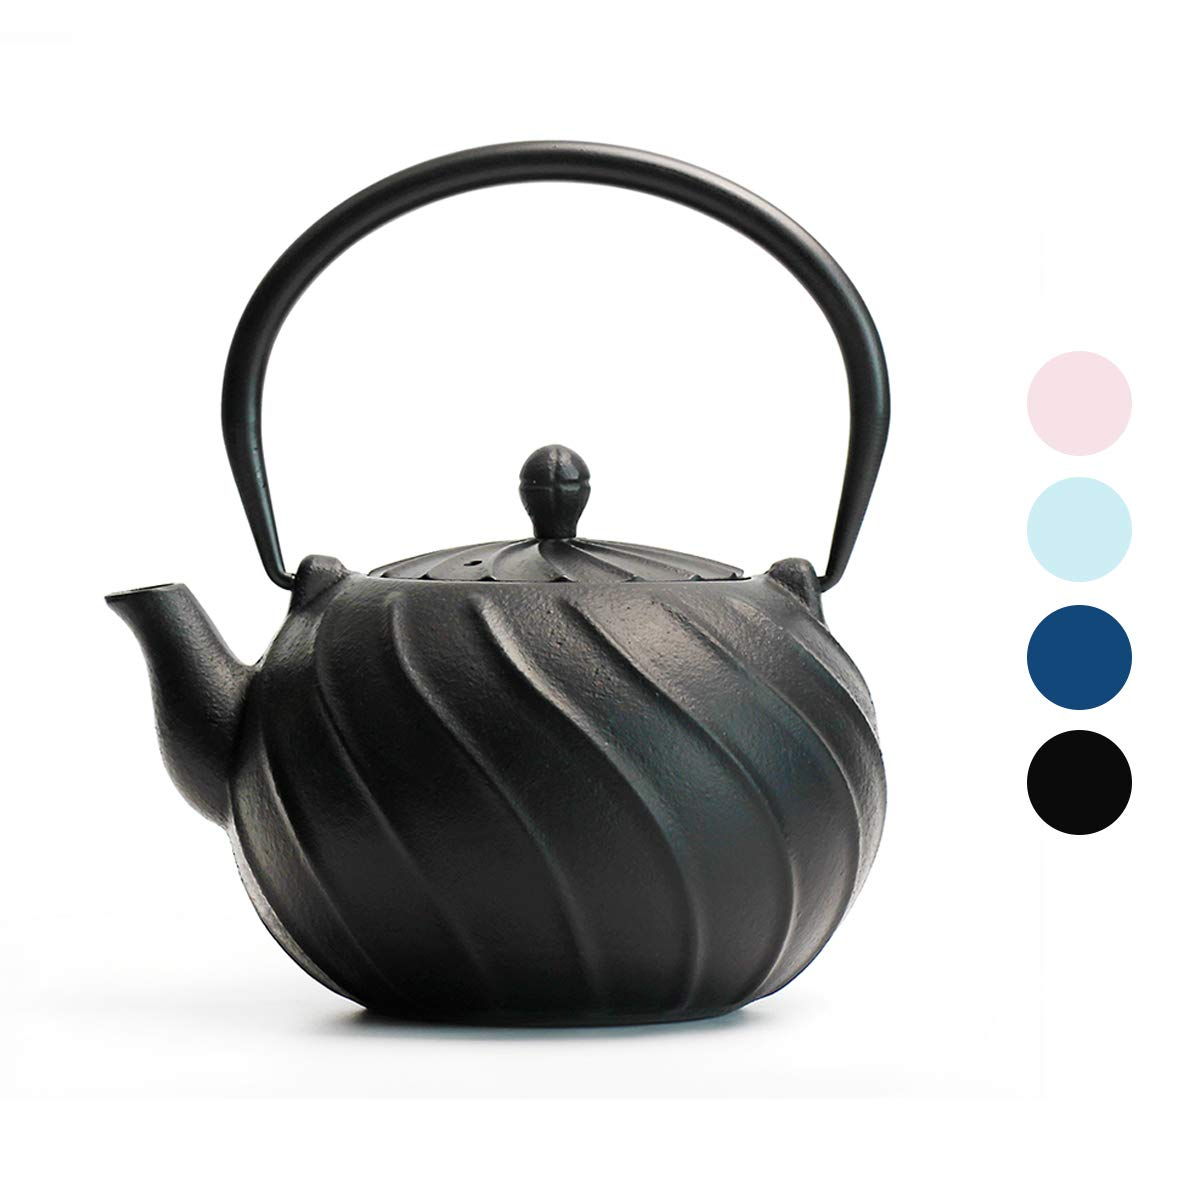 Stovetop Tea Kettle, TOPTIER Japanese Cast Iron Tea Kettle with Infuser for Loose Leaf and Tea Bags, Cast Iron Teakettle Coated with Enameled Interior for 40 oz (1200 ml), Midnight Black